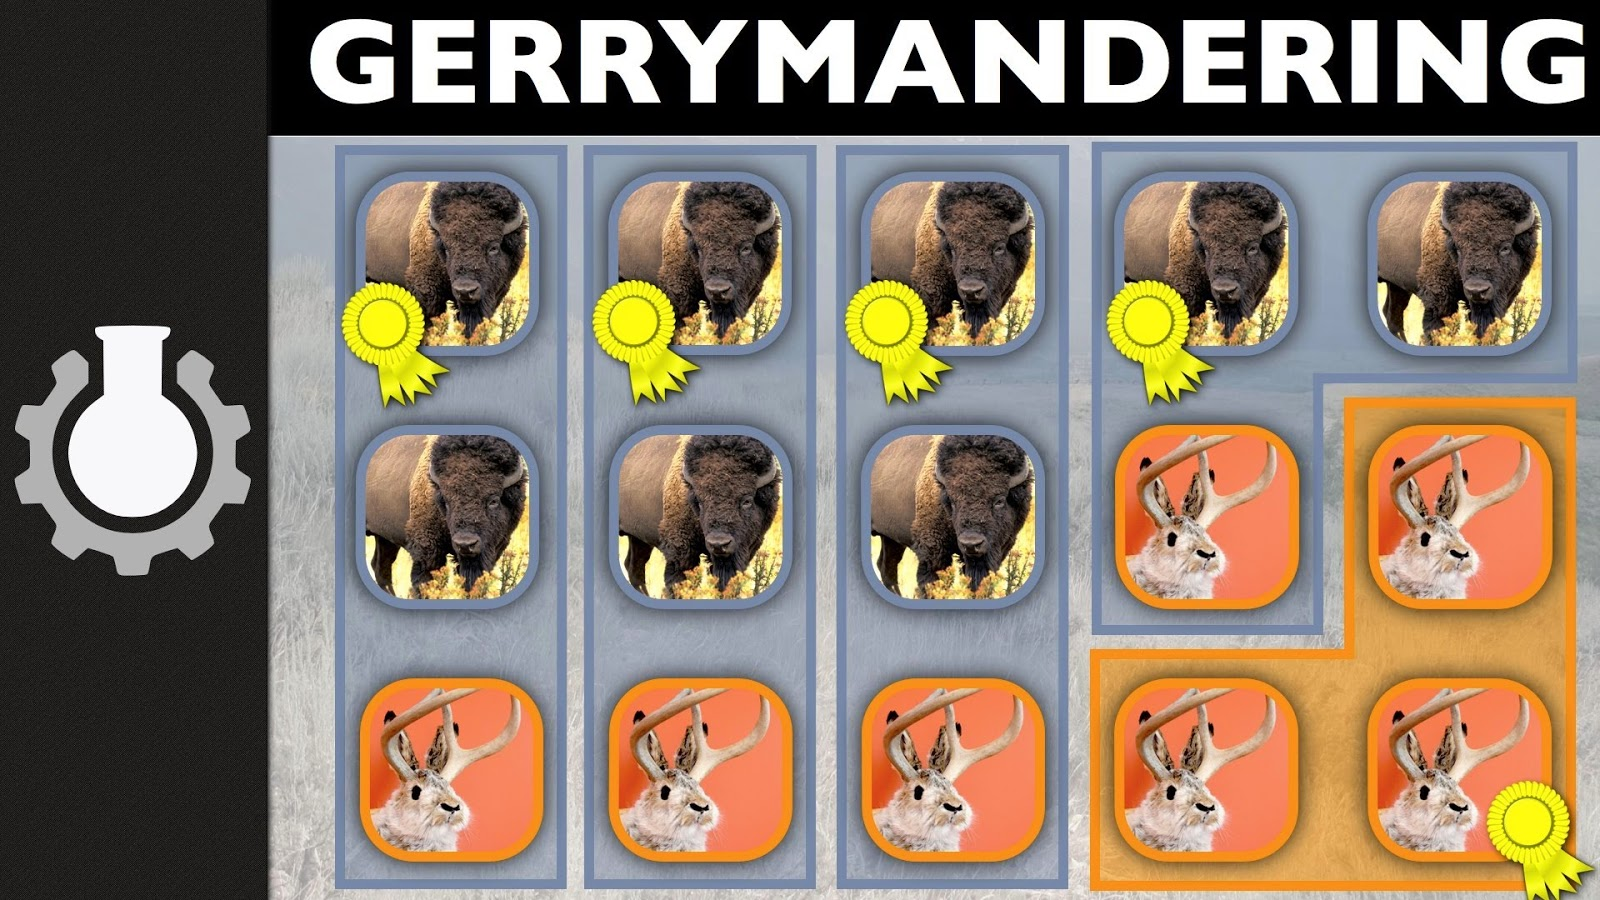 government gerrymandering The classic in mission two you experience the classic abuse of the redistricting system: a partisan gerrymander the word gerrymander comes from a famous case of redistricting in massachusetts in 1812 the governor at the time, elbridge gerry, signed a map into law that included a district shaped like a salamander.